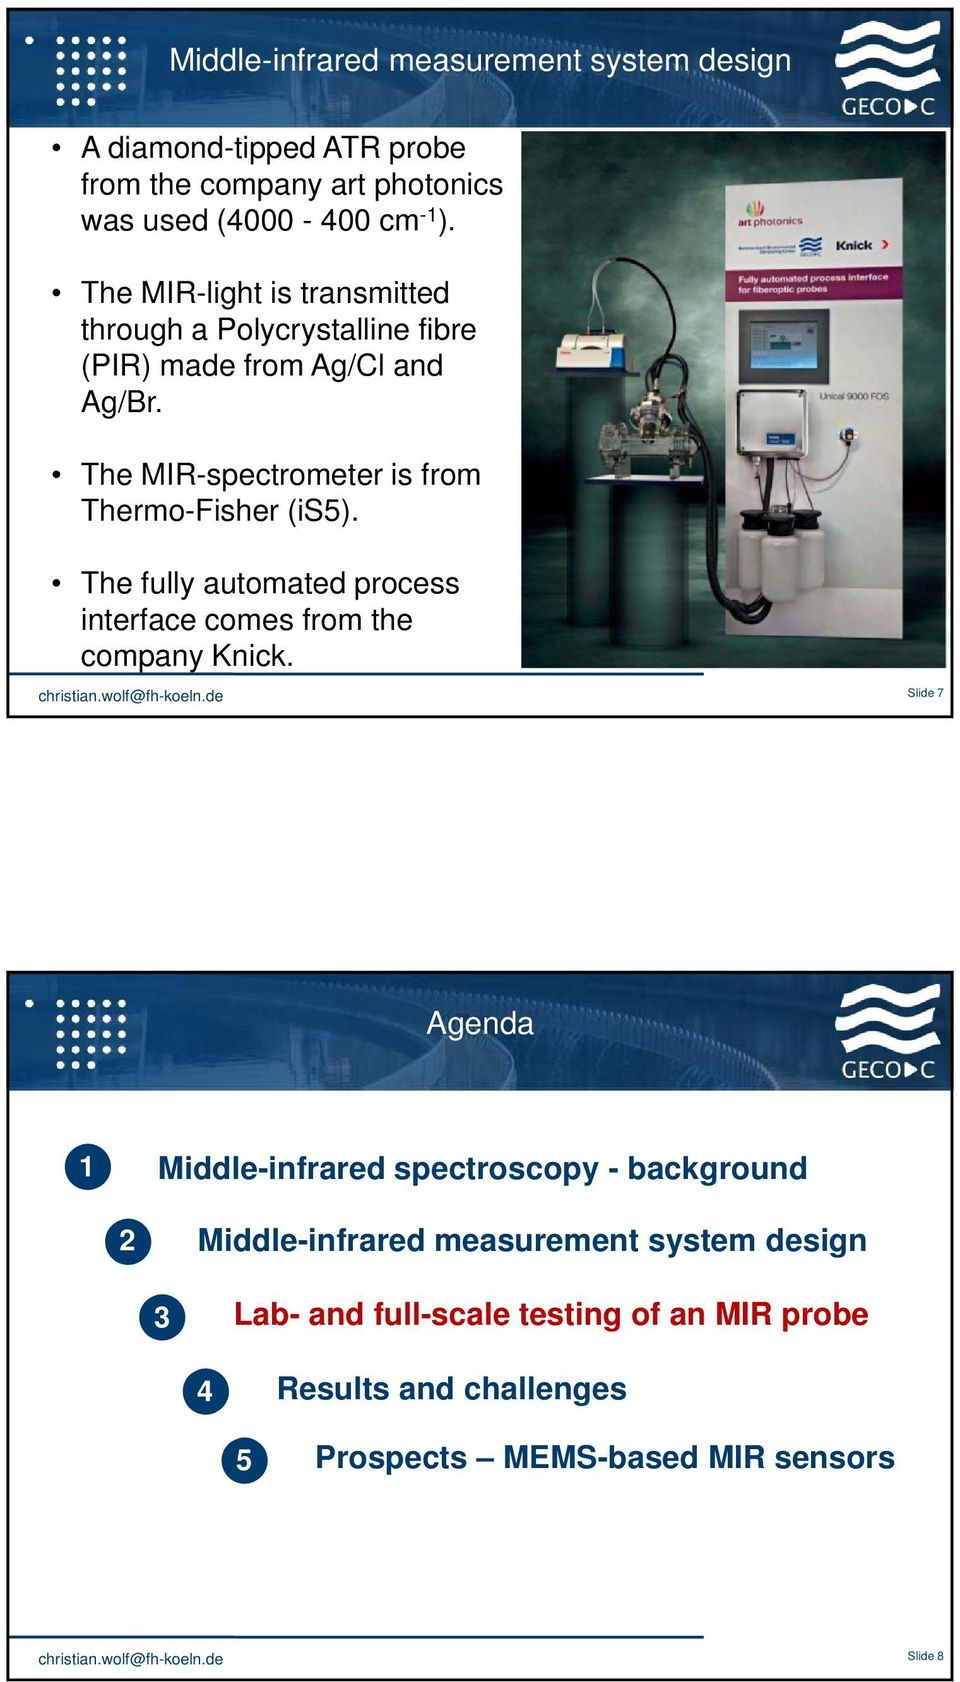 The fully automated process interface comes from the company Knick.